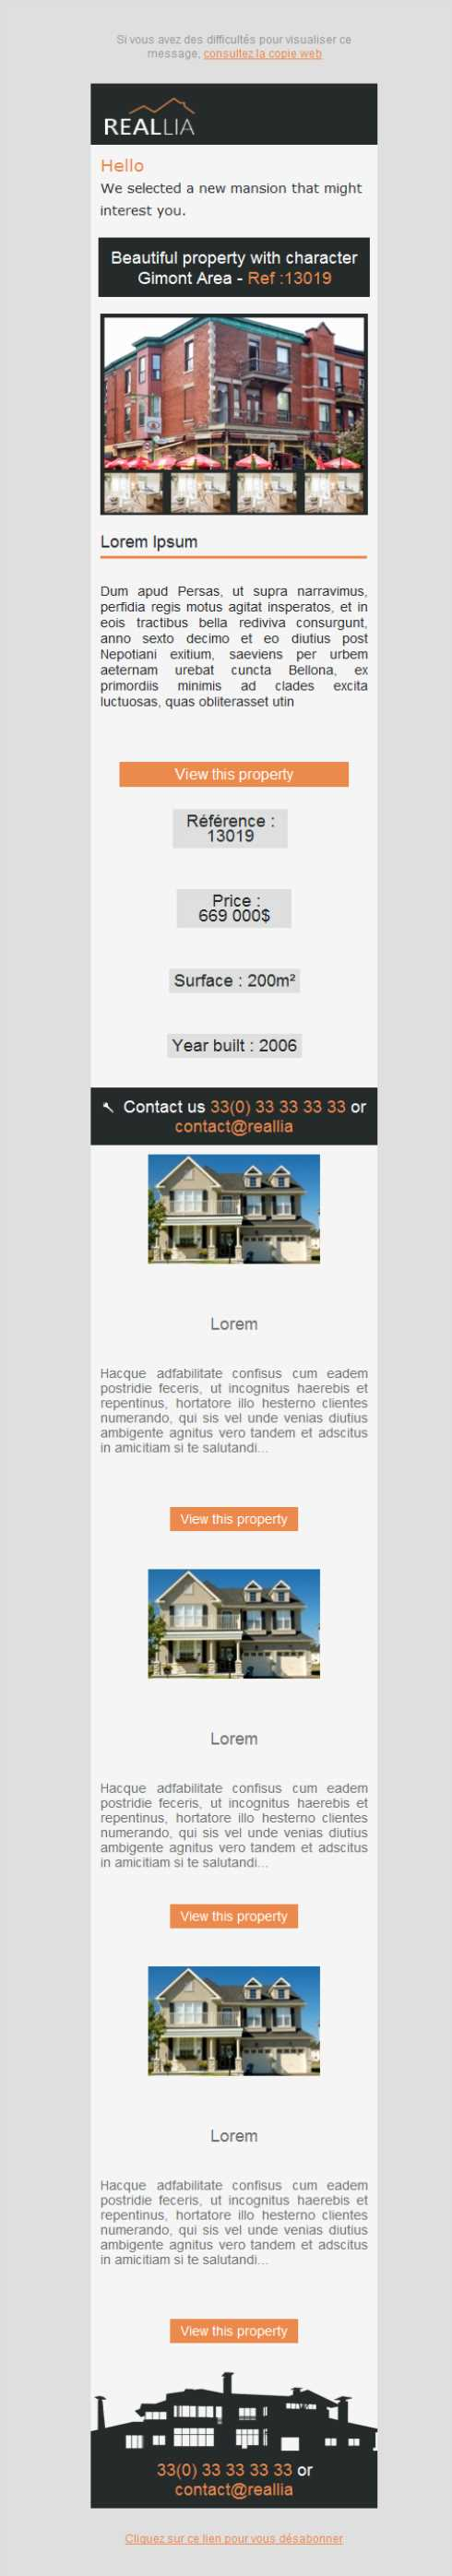 Templates Emailing Realtor Listings Sarbacane